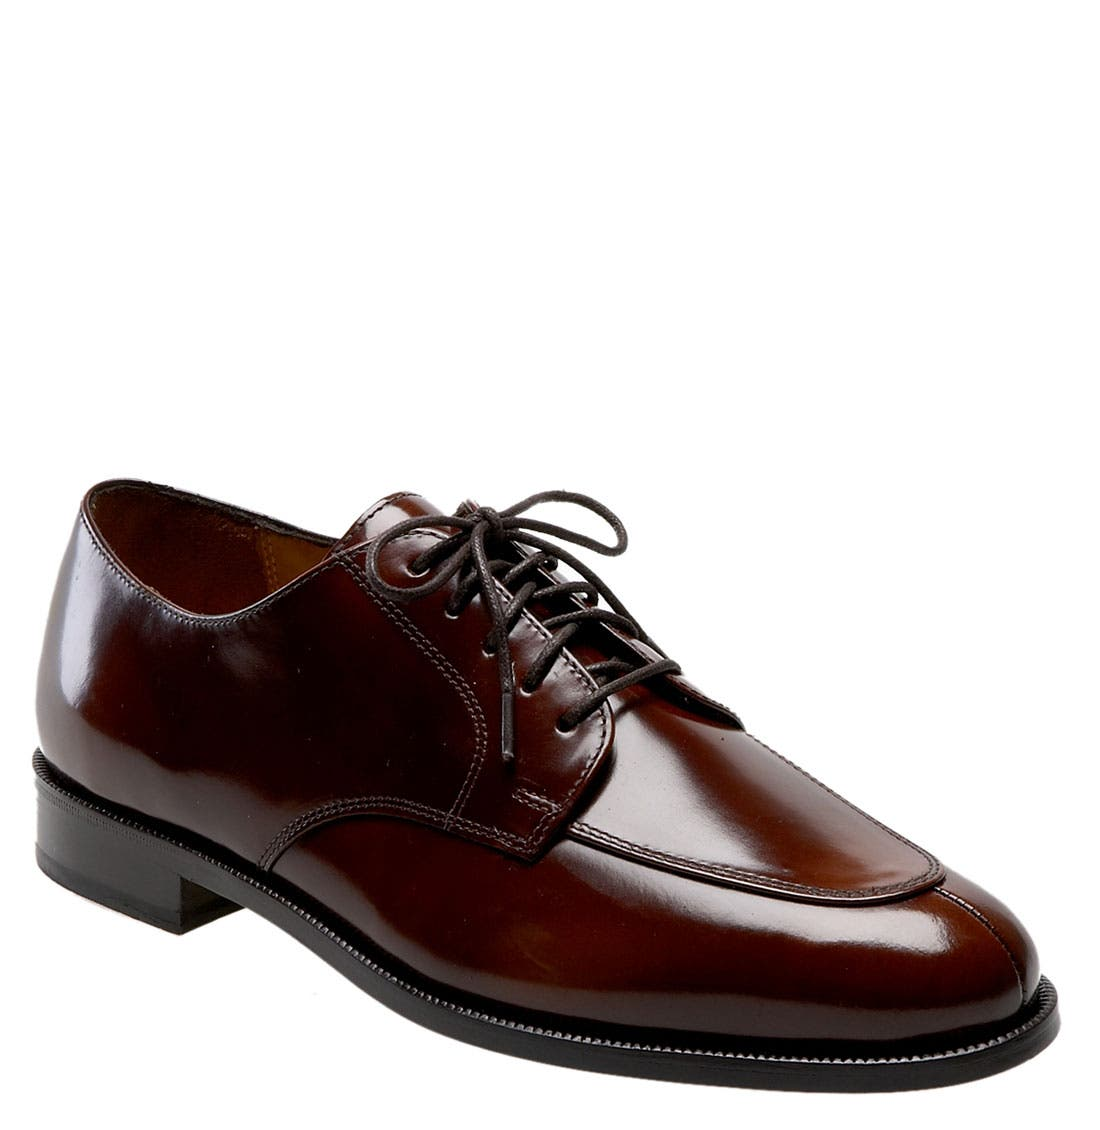 Alternate Image 1 Selected - Cole Haan 'Calhoun' Oxford (Online Only)   (Men)